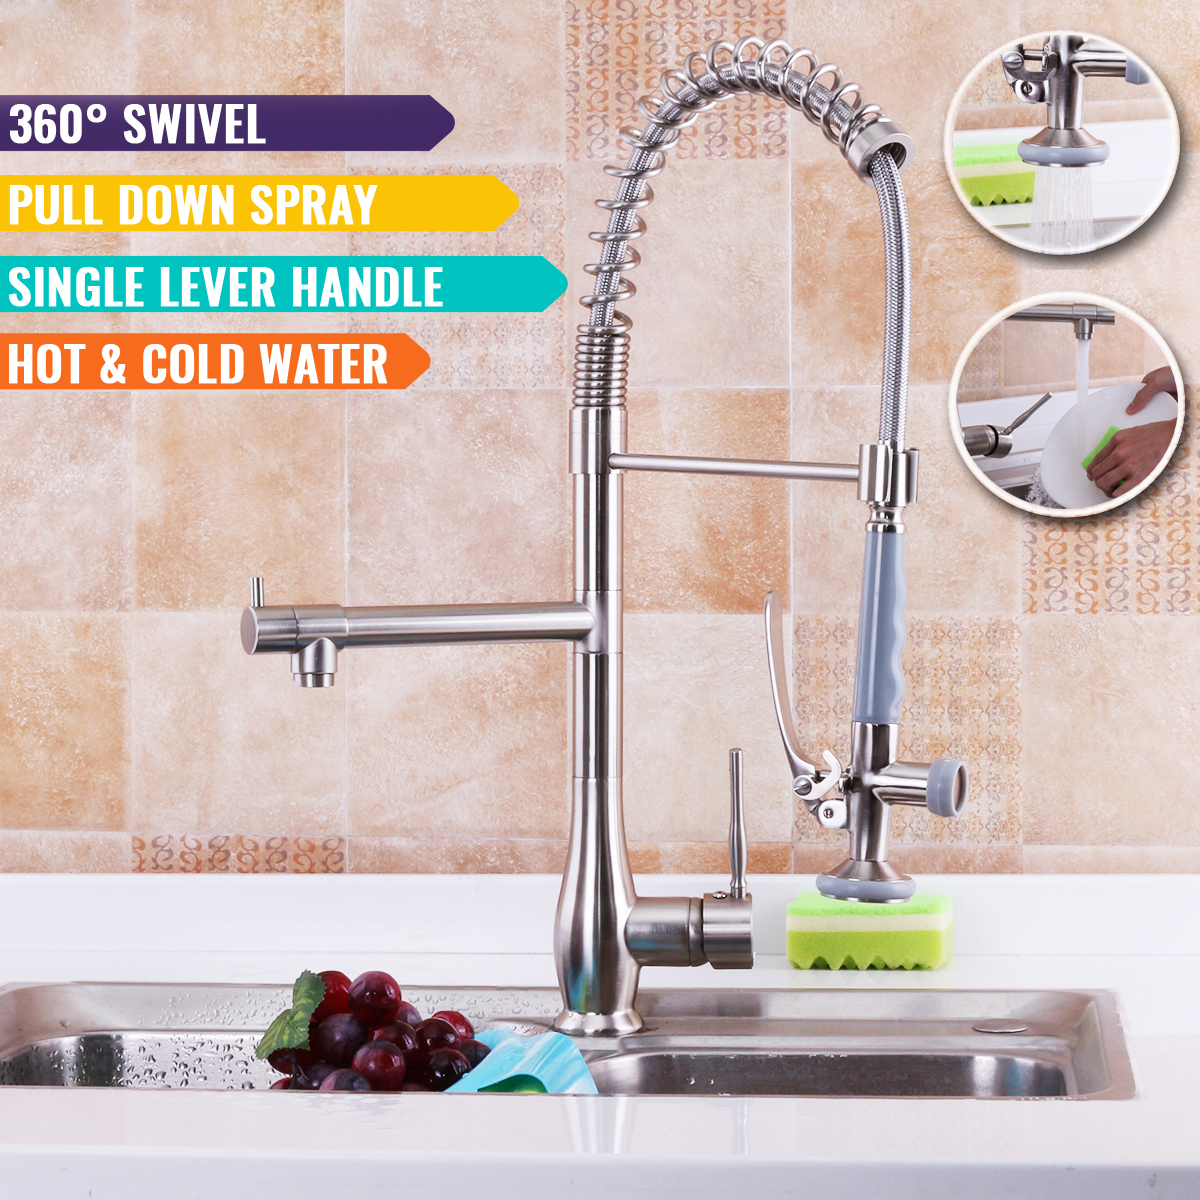 Xueqin 360Degree Rotatable Spring Pull Down Spray Kitchen Sink Faucet Brushed Nickel With Two Hoses Mixer Cold And Hot Water Tap цена 2017